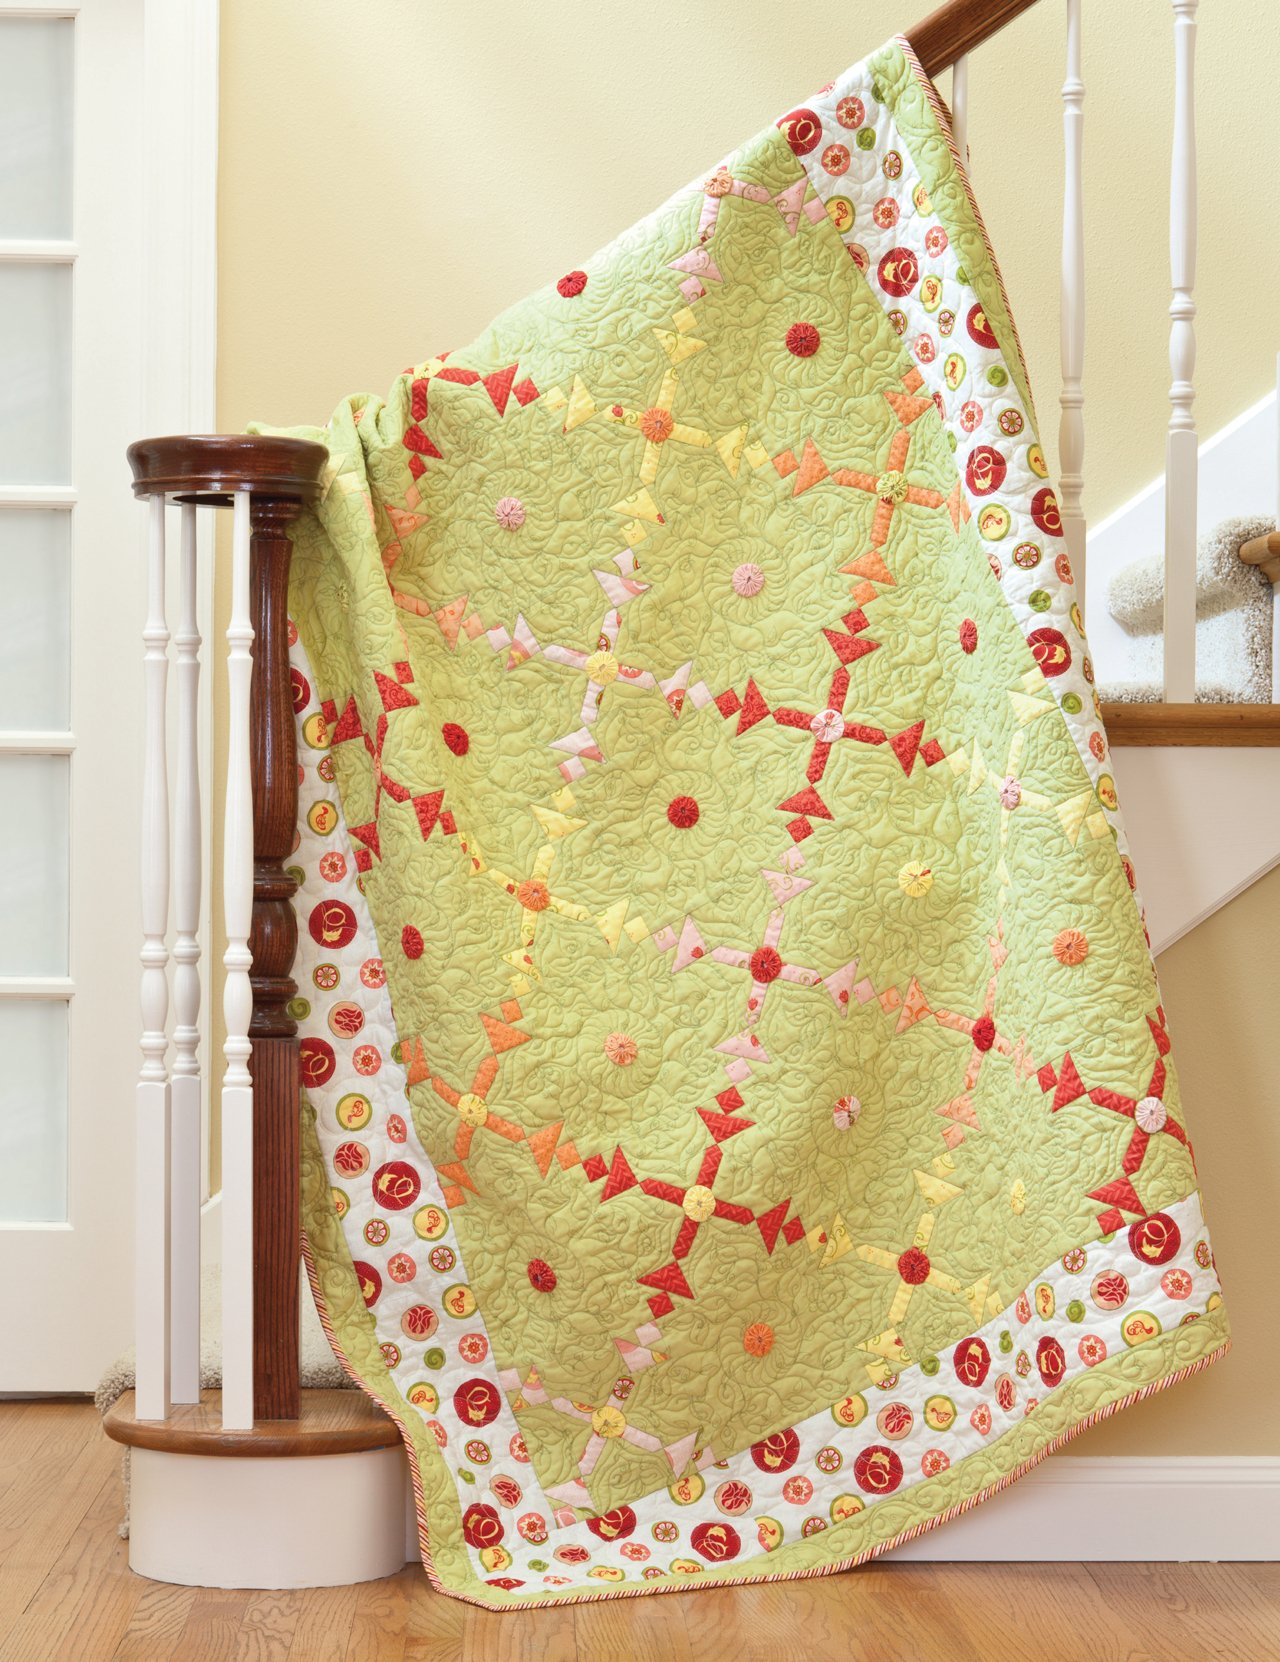 Home Sweet Quilt: Fresh, Easy Quilt Patterns from Jillily Studio ...